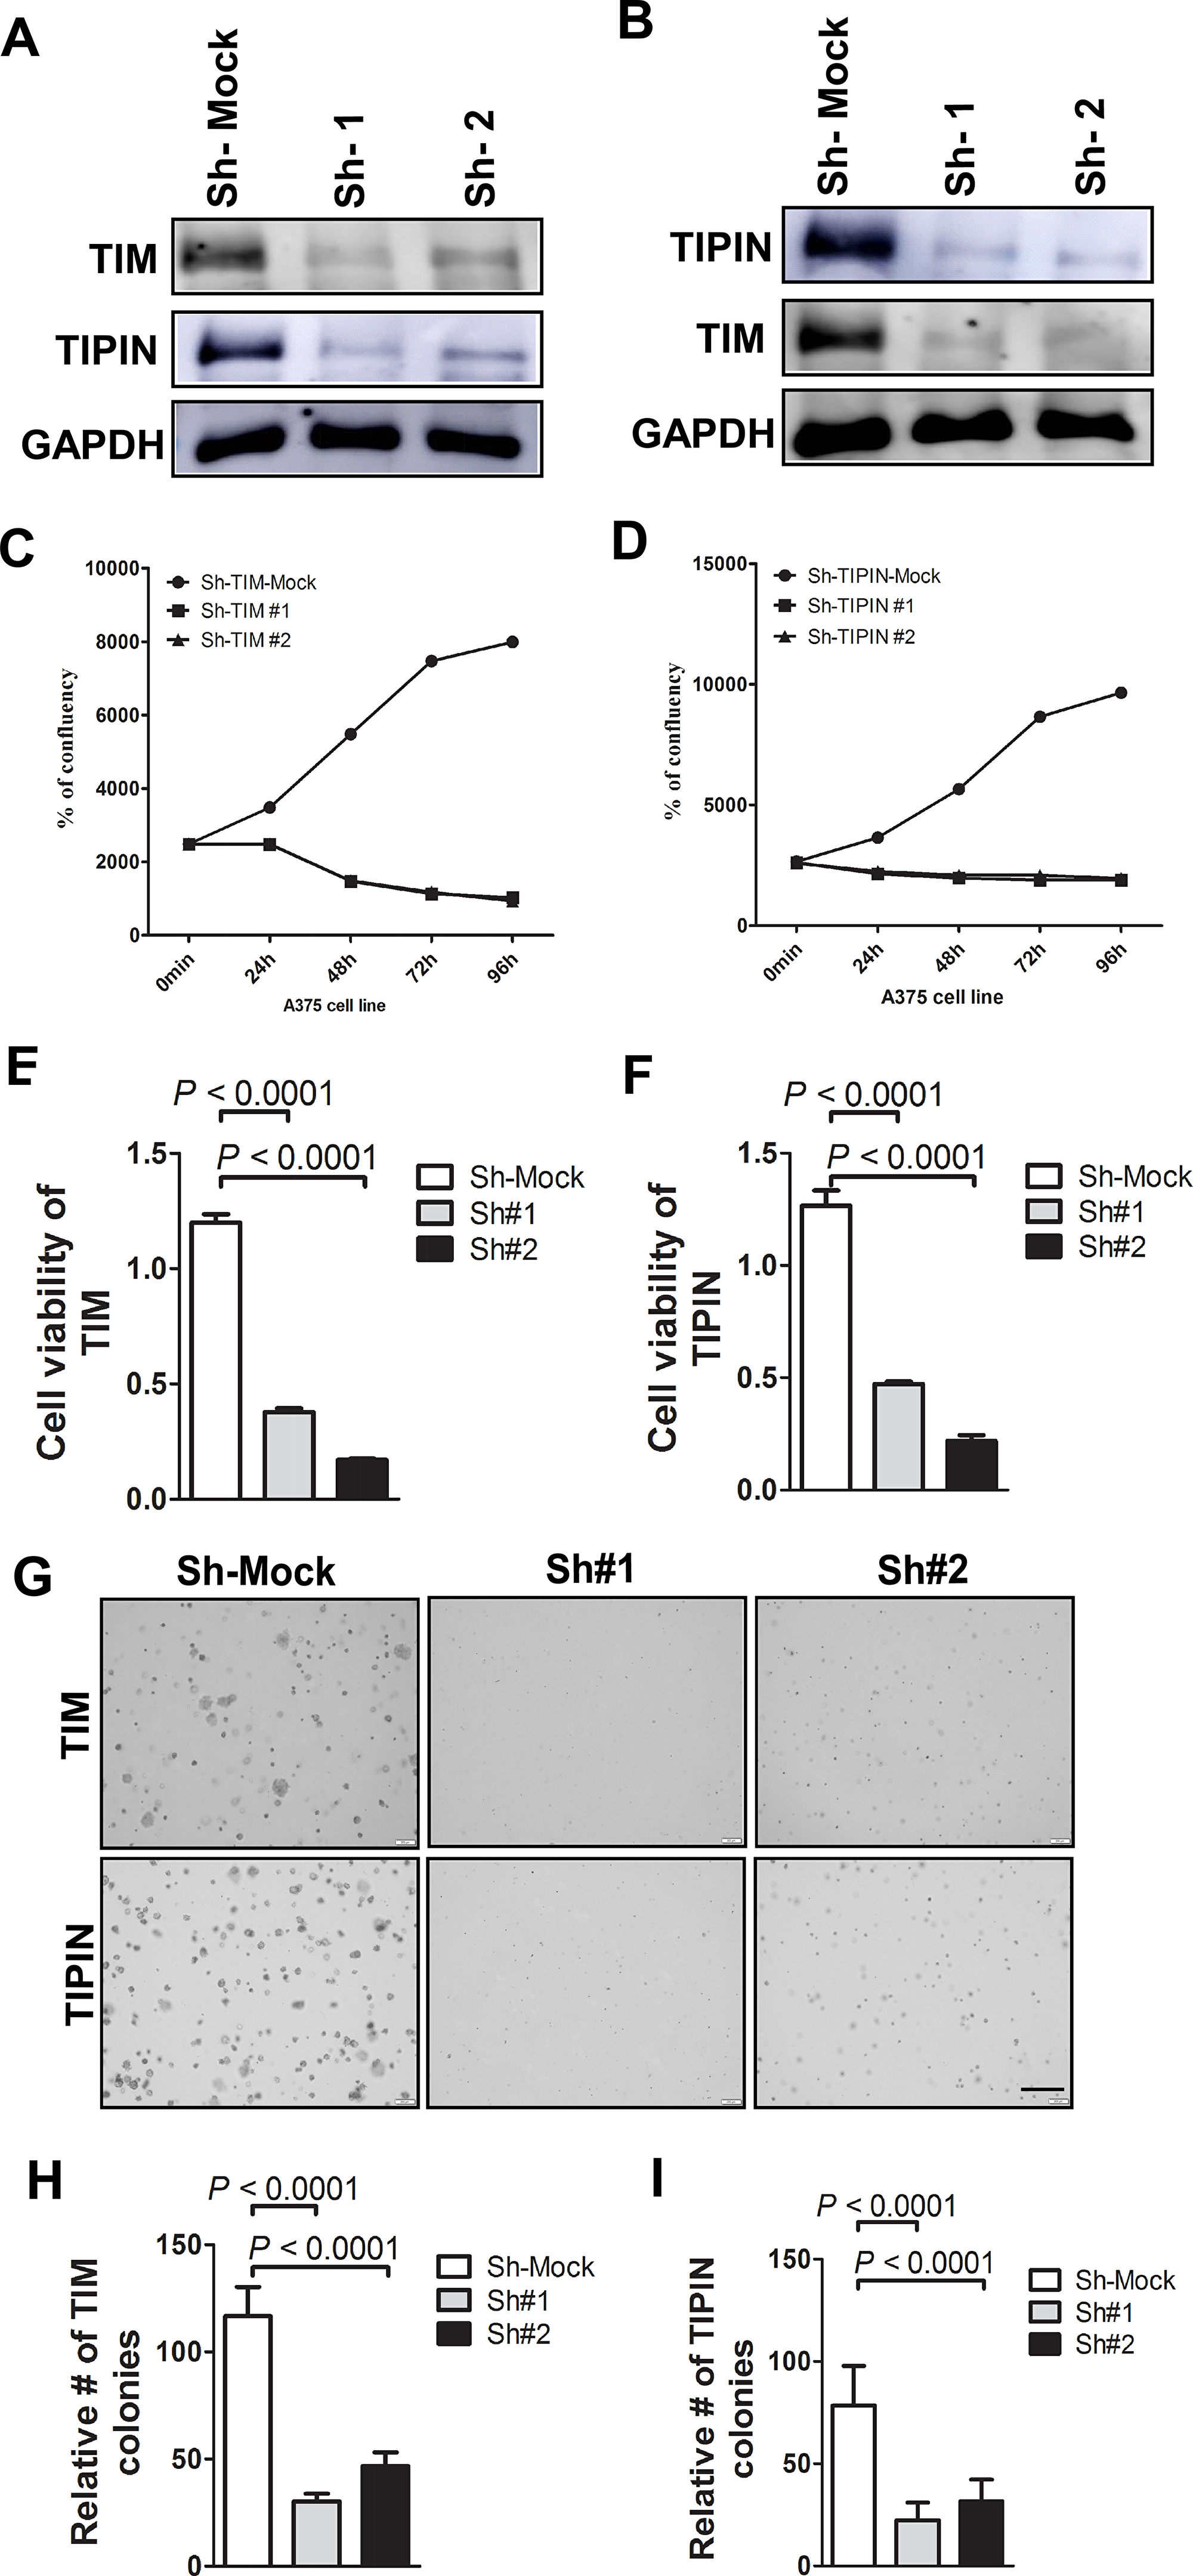 Knockdown of TIM/TIPIN inhibits melanoma cell proliferation.